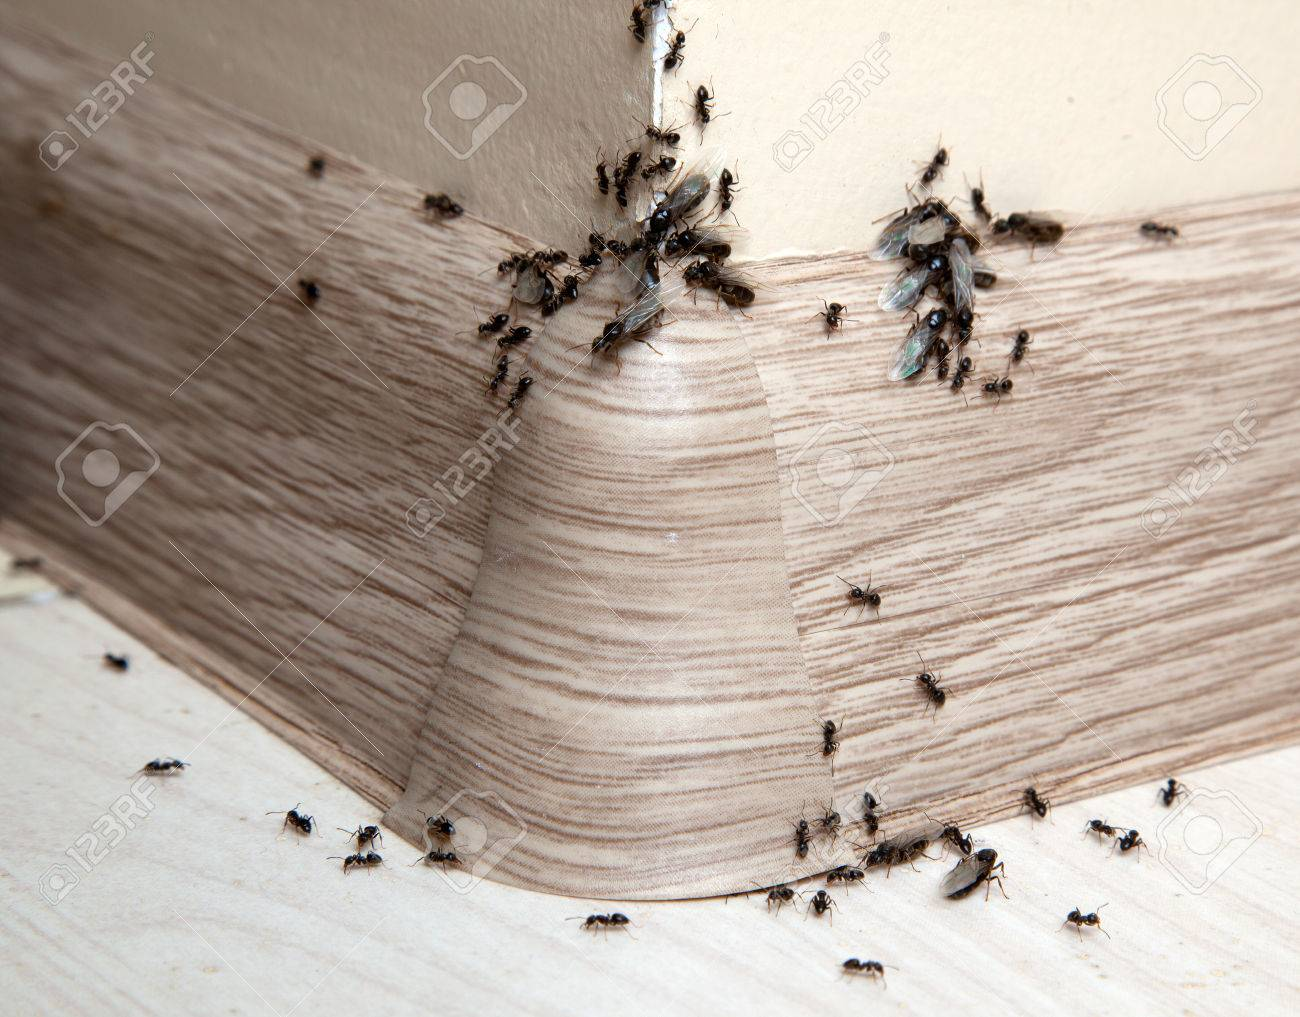 Ants in the house on the baseboards and wall angle Standard-Bild - 72265270